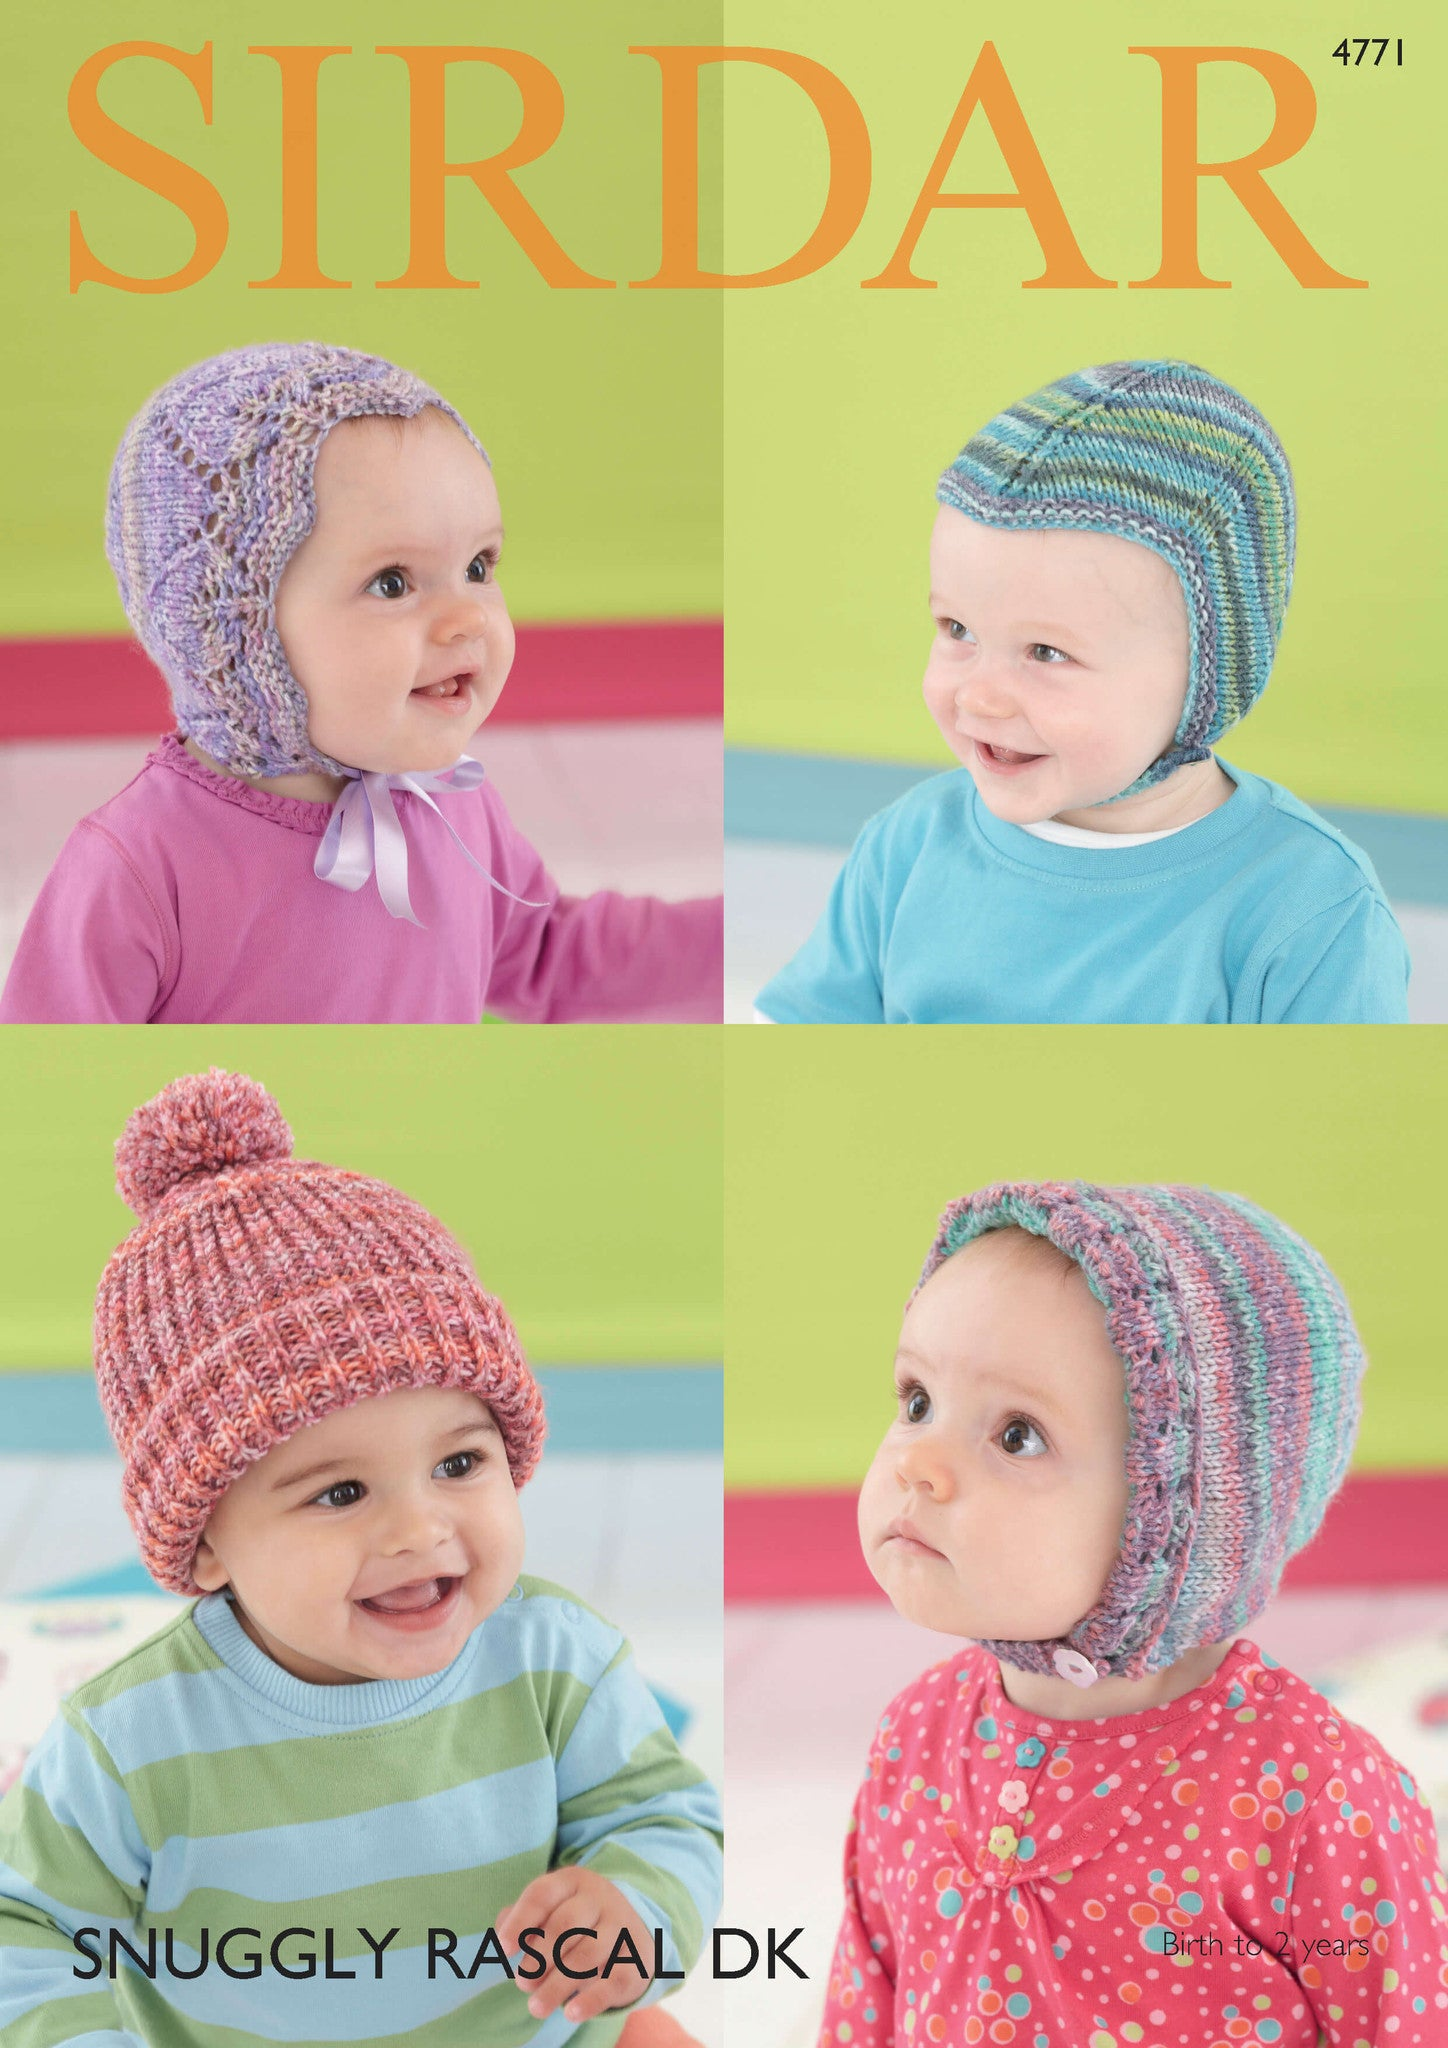 Baby Hats in Sirdar Snuggly Rascal DK (4771)-Deramores